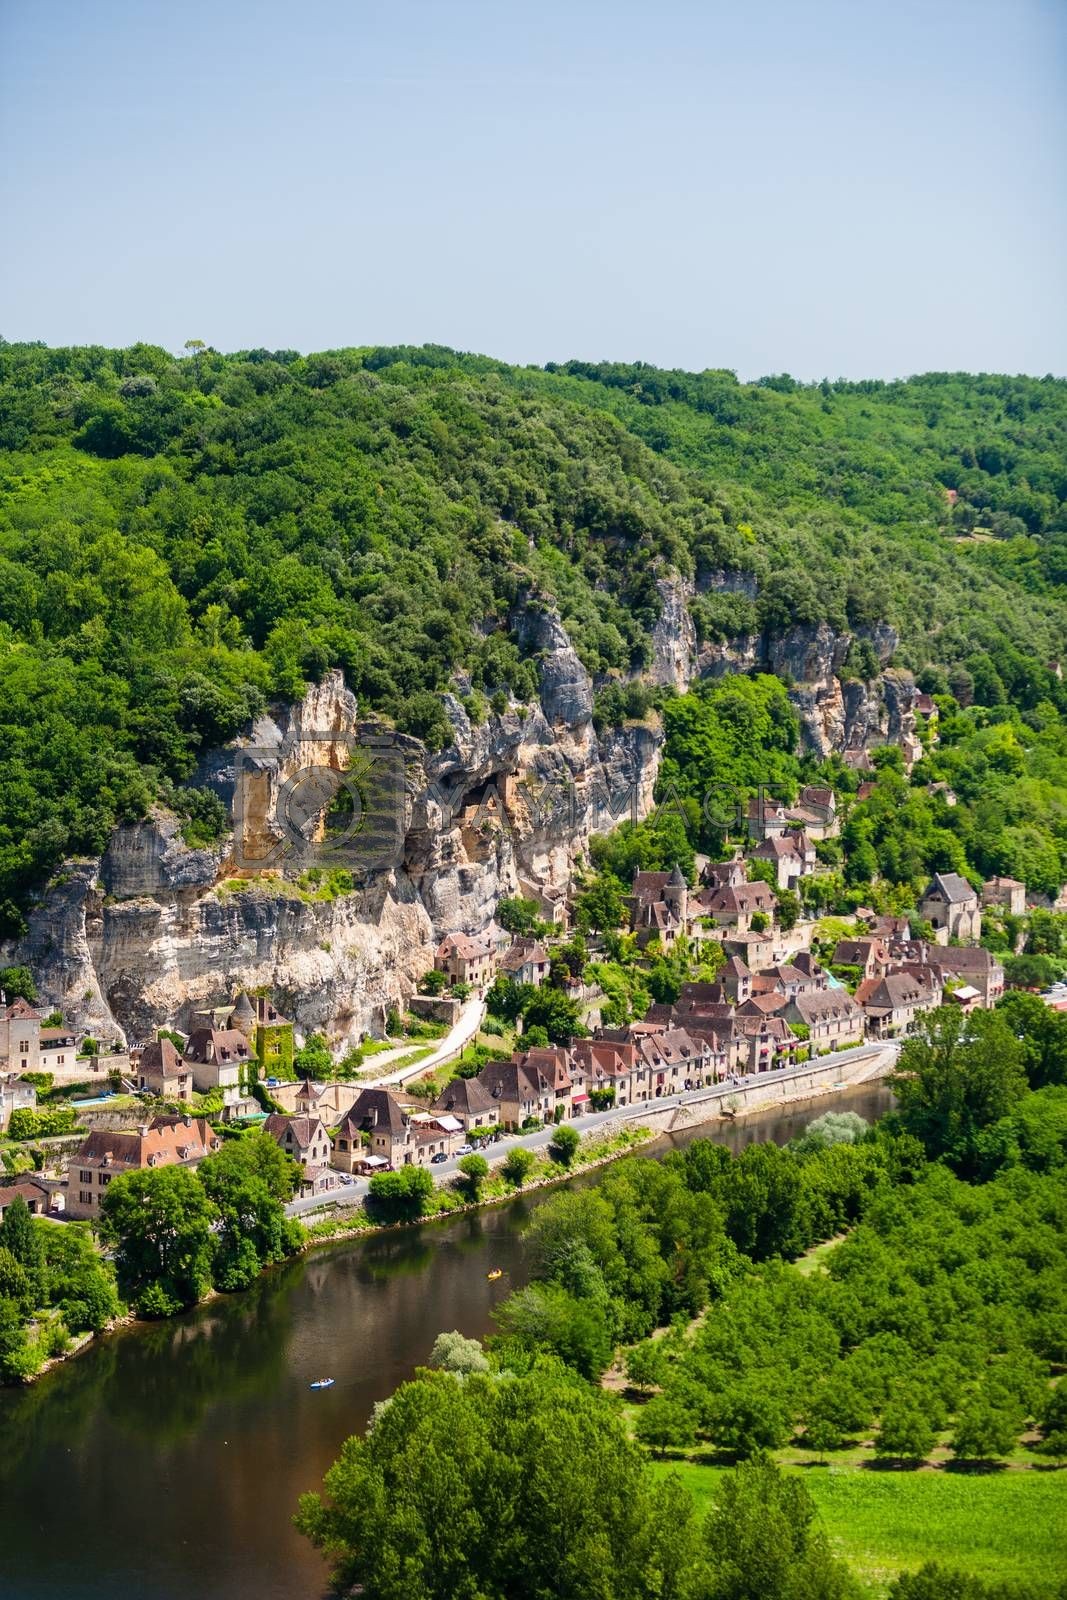 La Roque Gageac village in the Dorgogne region of France by imagsan